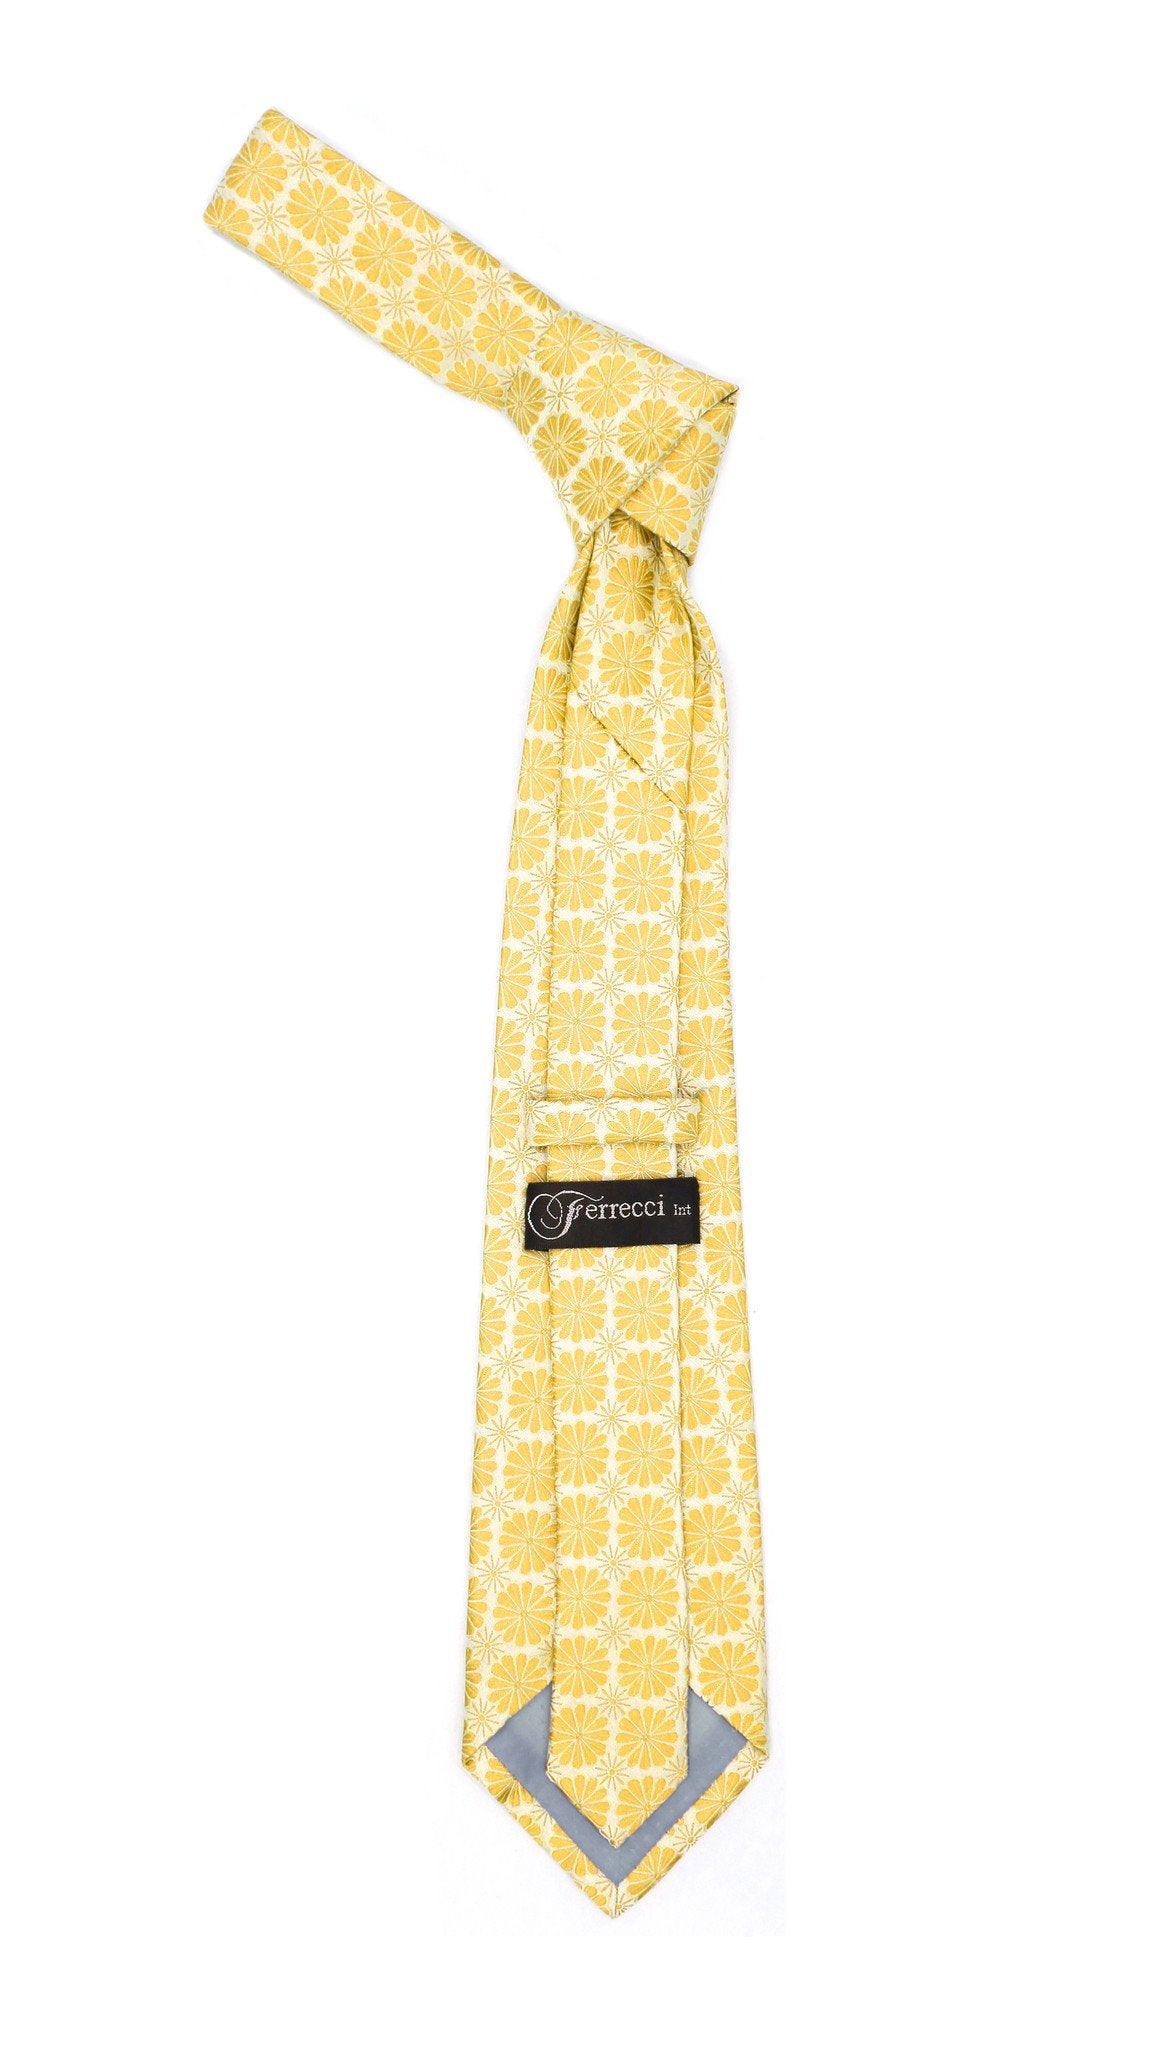 Floral Yellow Necktie with Handkderchief Set - Giorgio's Menswear